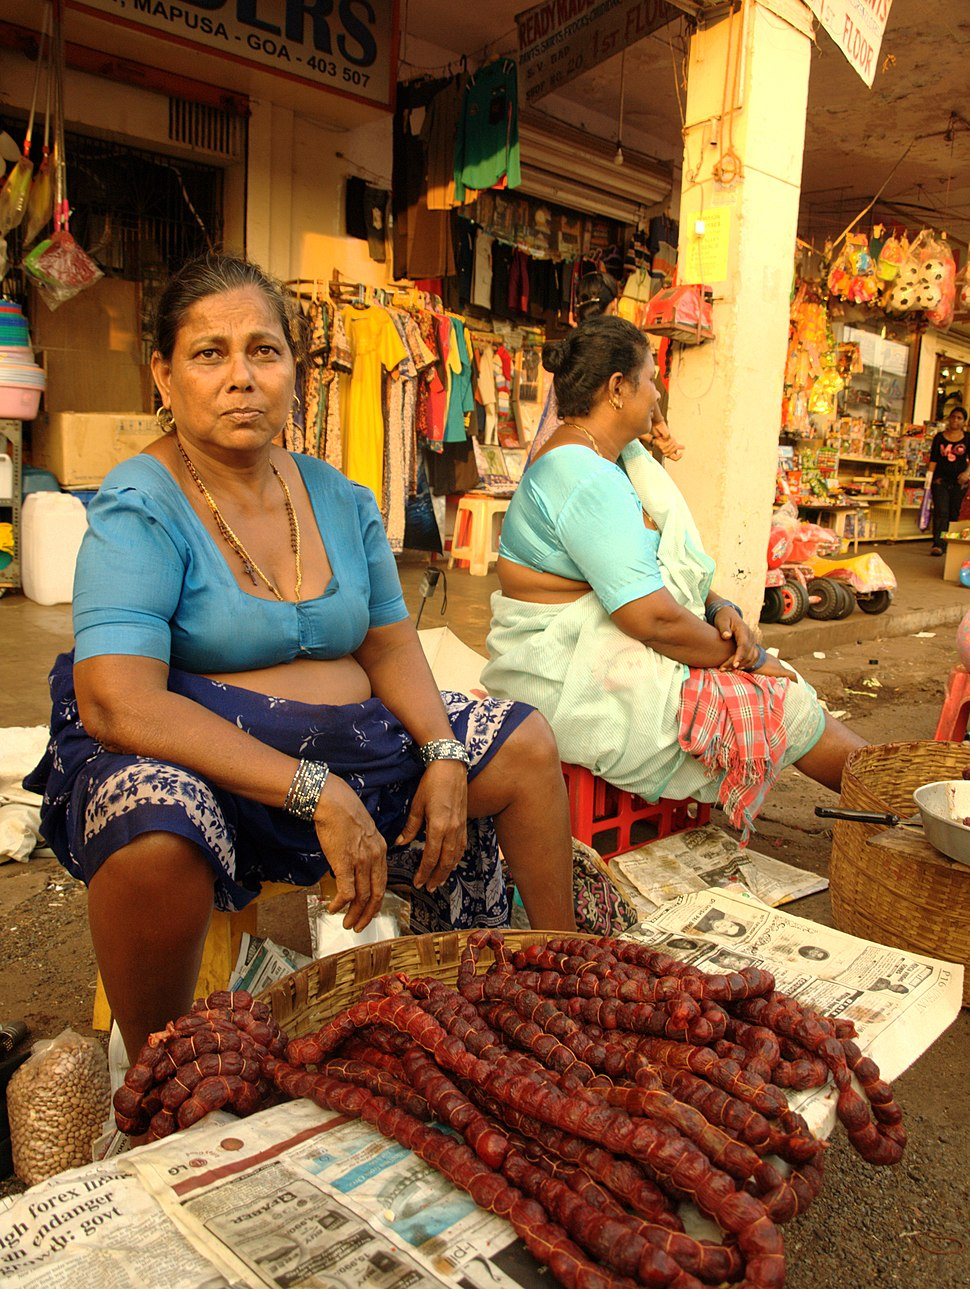 Goan sausages being sold at the Mapusa market, Goa, India 03